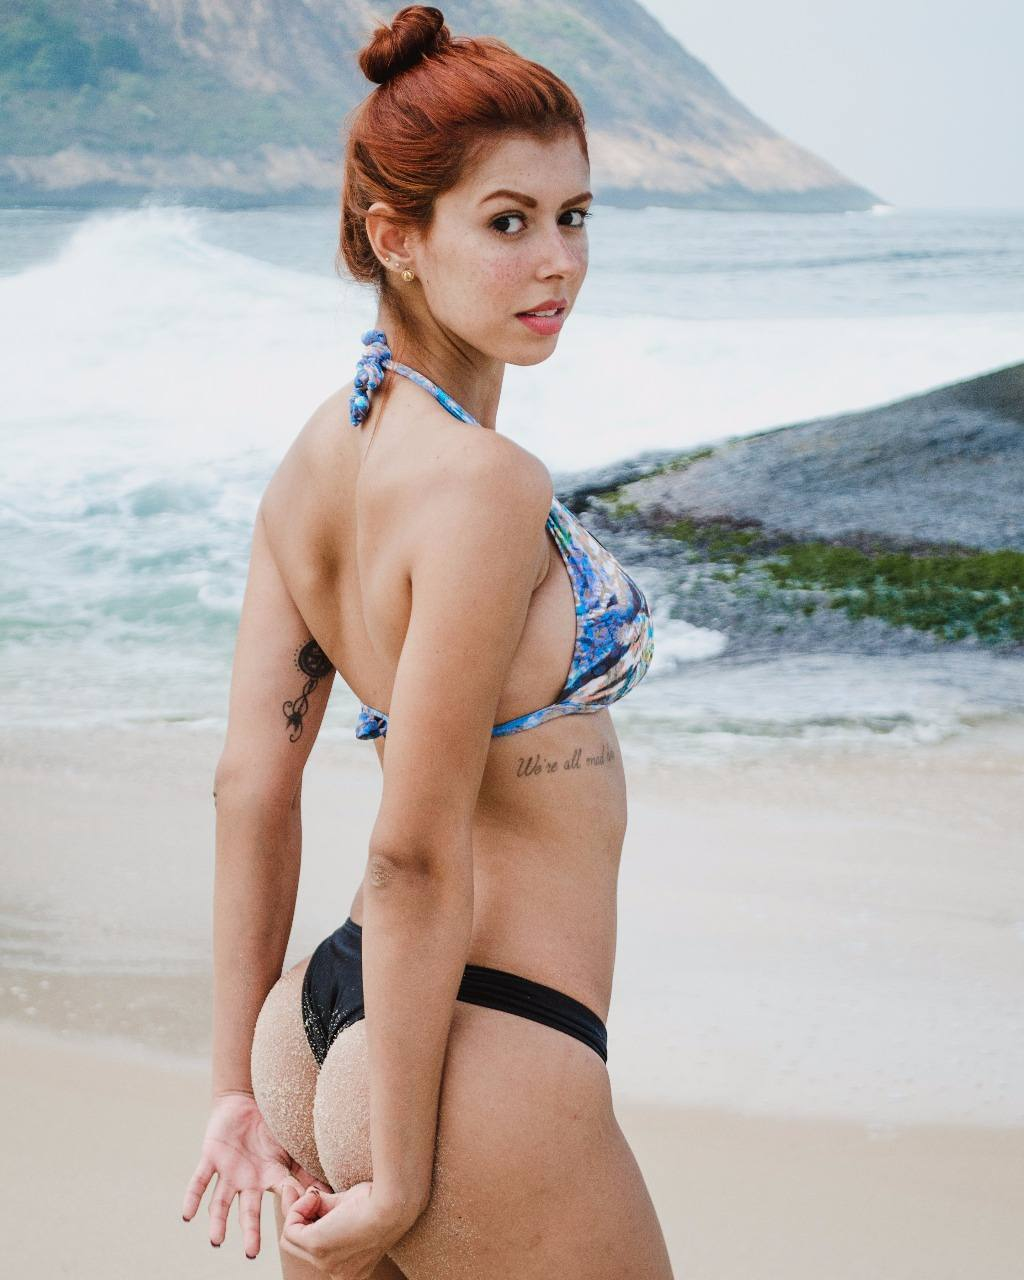 busty redhead model Aline Brito in a thong